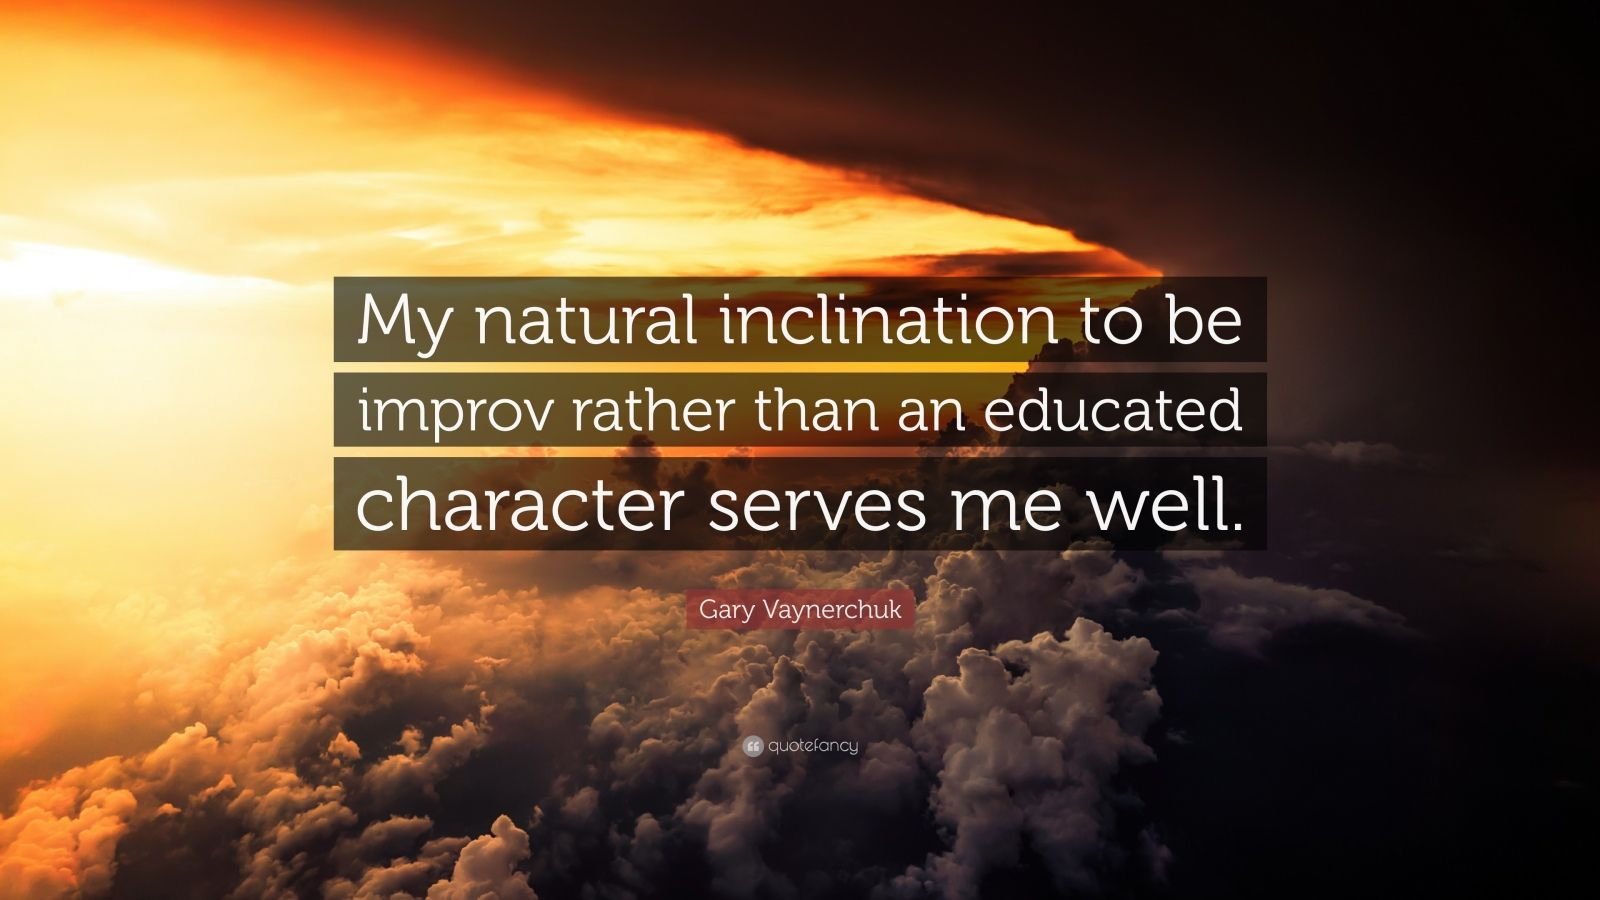 """Gary Vaynerchuk Quote: """"My natural inclination to be improv rather than an educated character serves me well."""""""